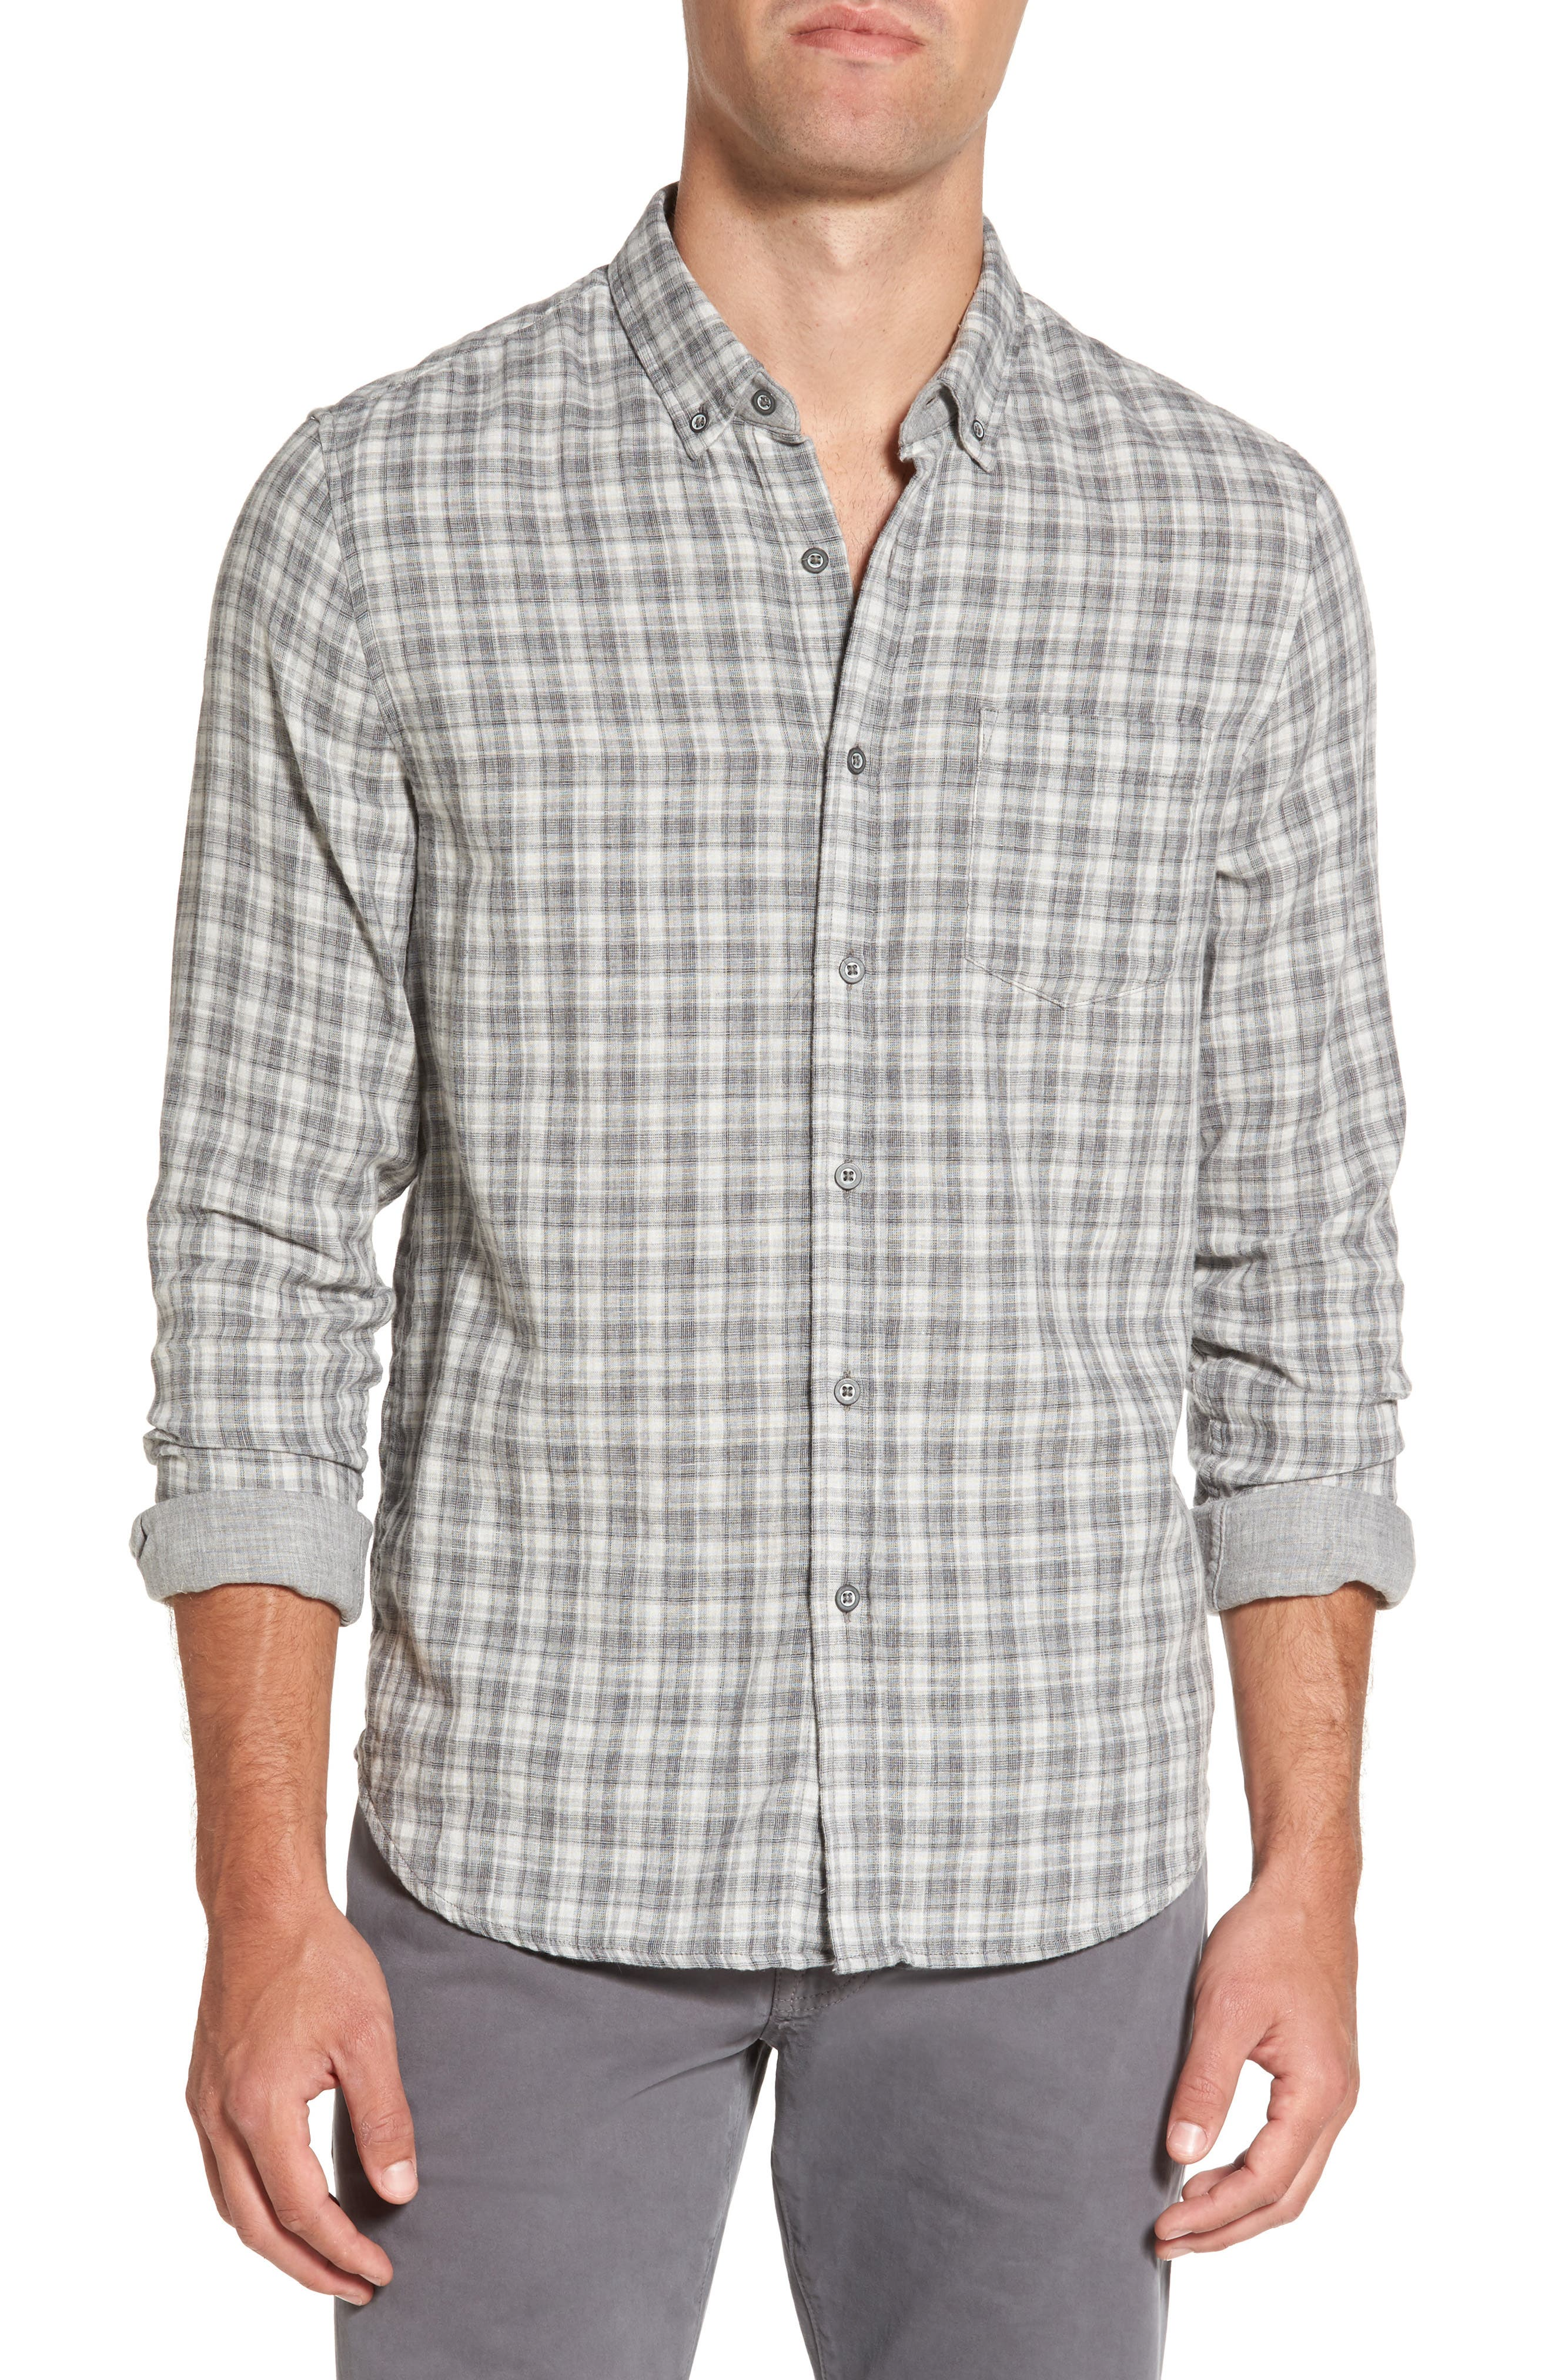 Grady Plaid Sport Shirt,                             Main thumbnail 1, color,                             Dlp Heather Grey/ White